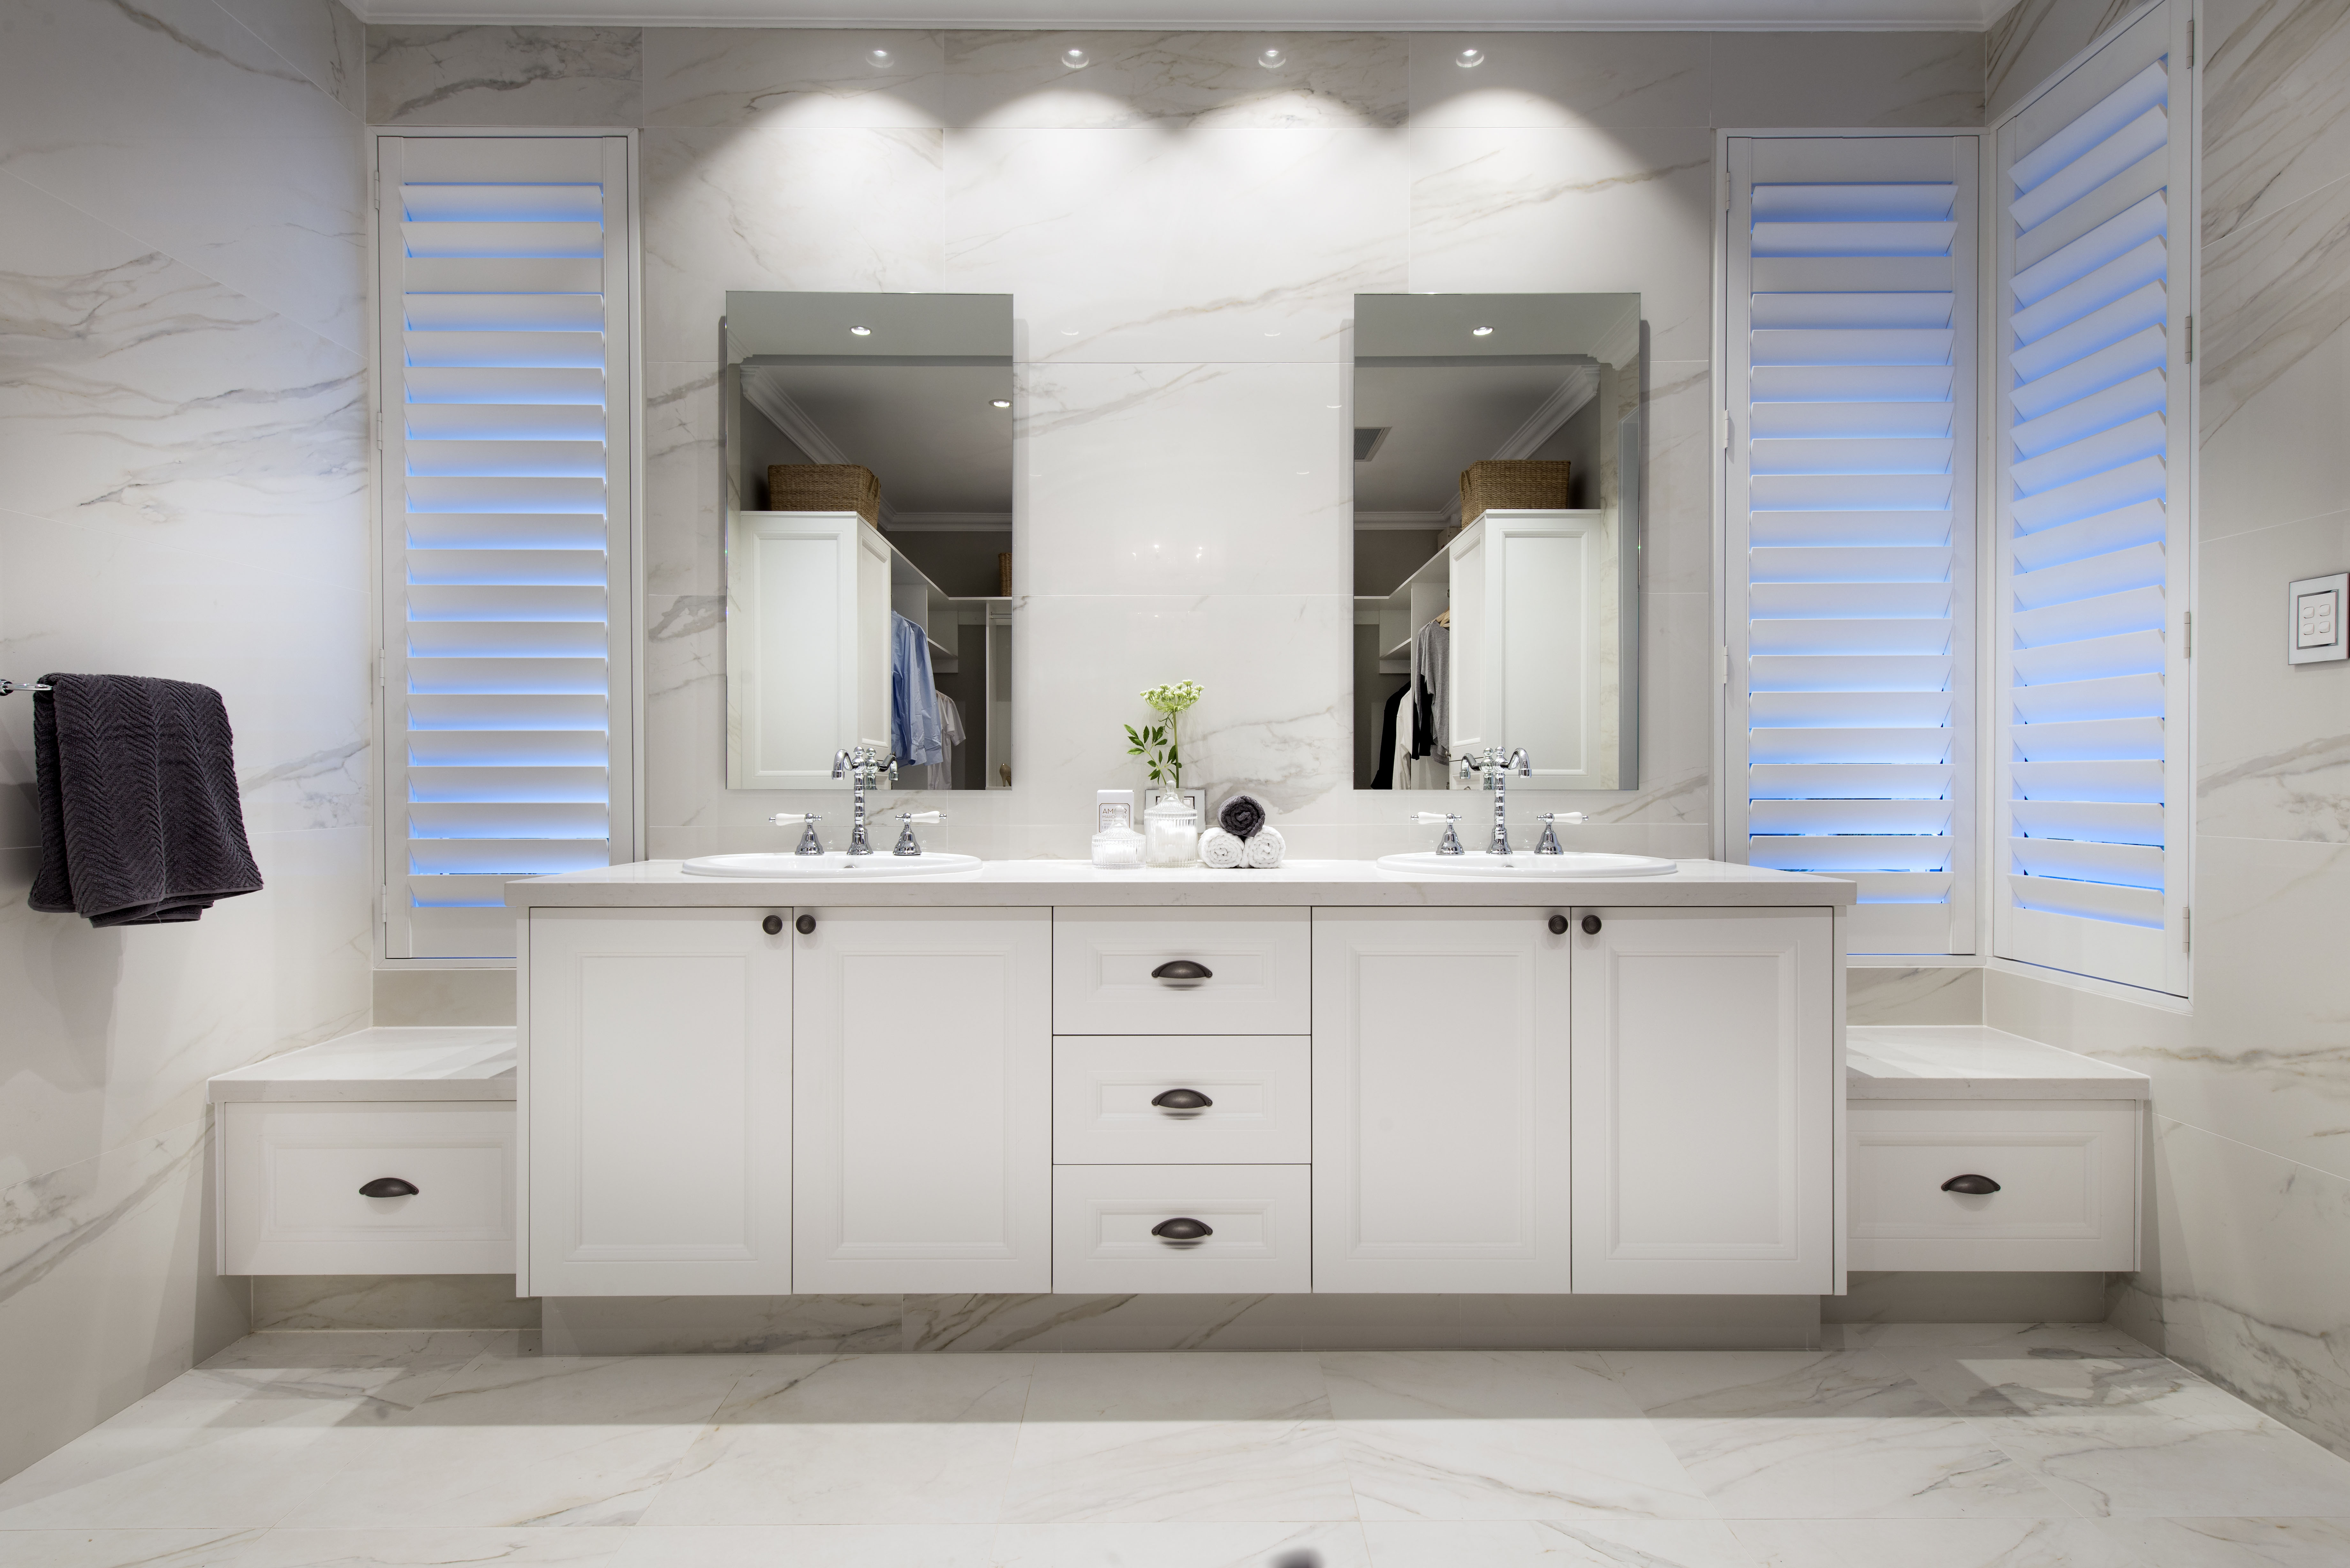 The completely white vanity, paired with the marble flooring, walls and countertops give this bathroom a pristine and luxurious feel.